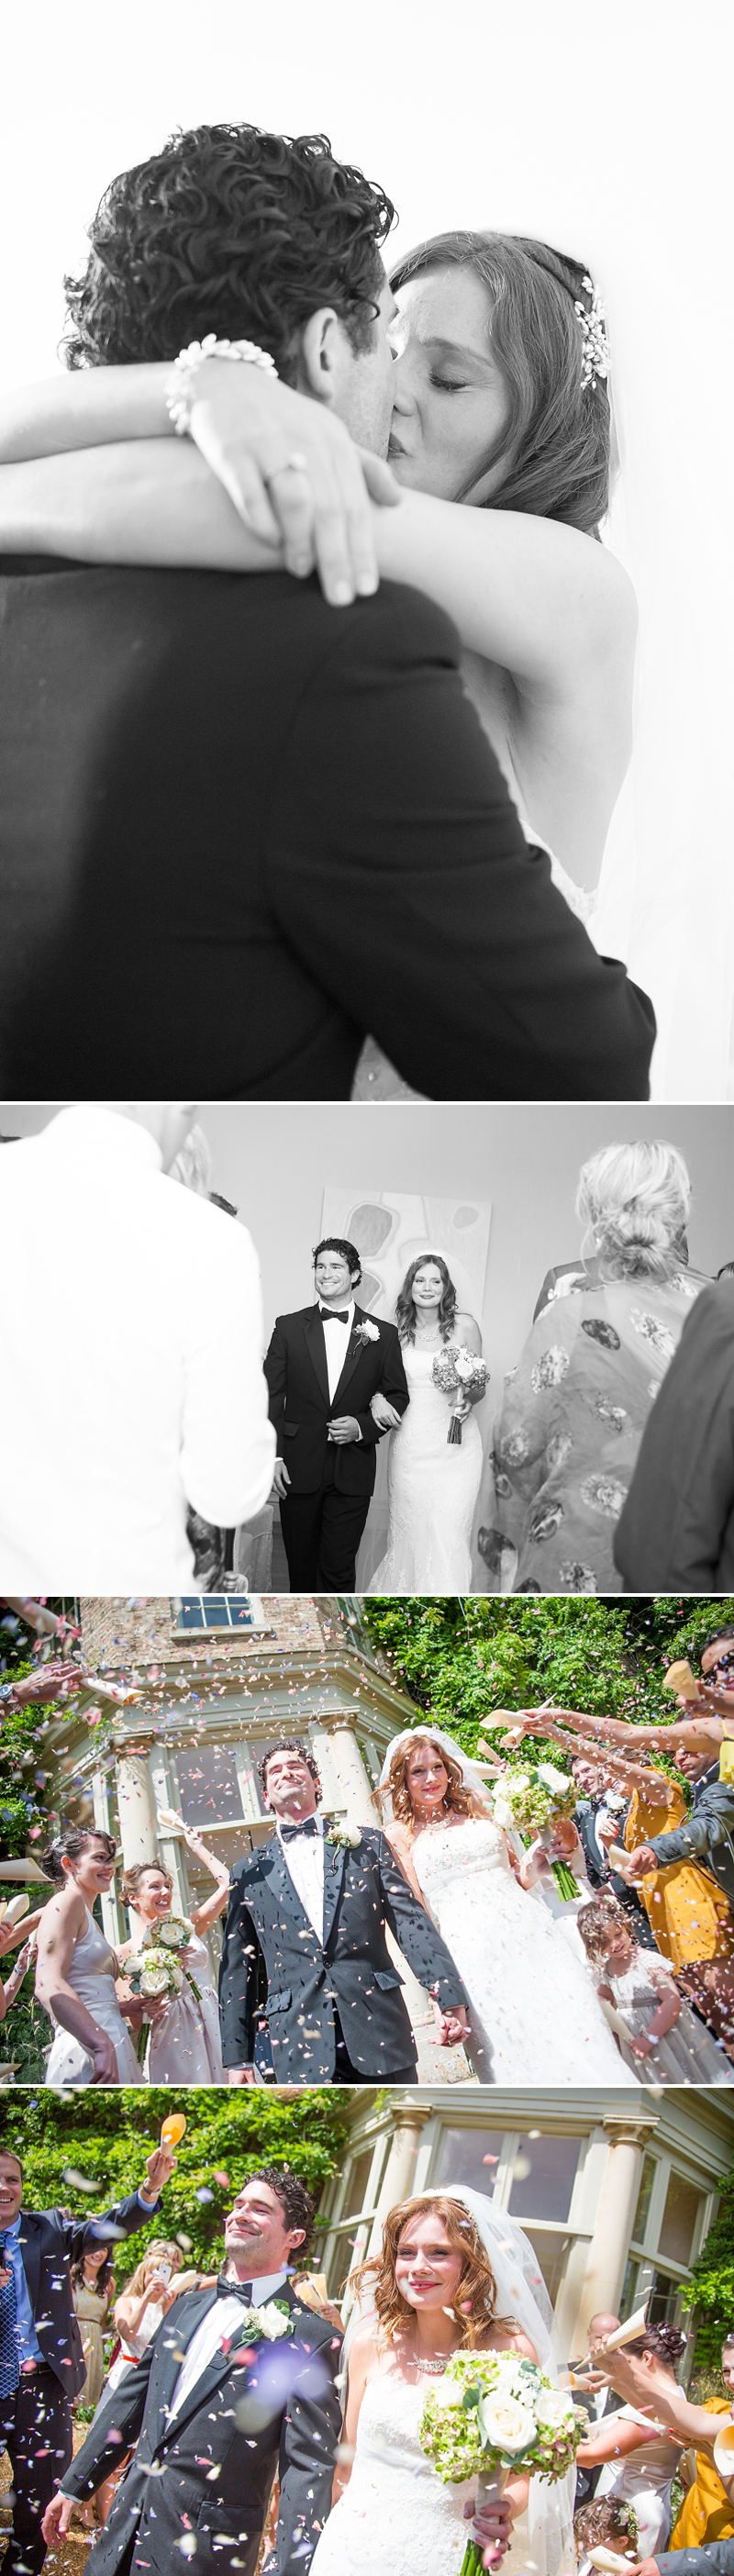 coco-wedding-venues-real-wedding-narborough-hall-gardens-katherine-ashdown-photography-3a